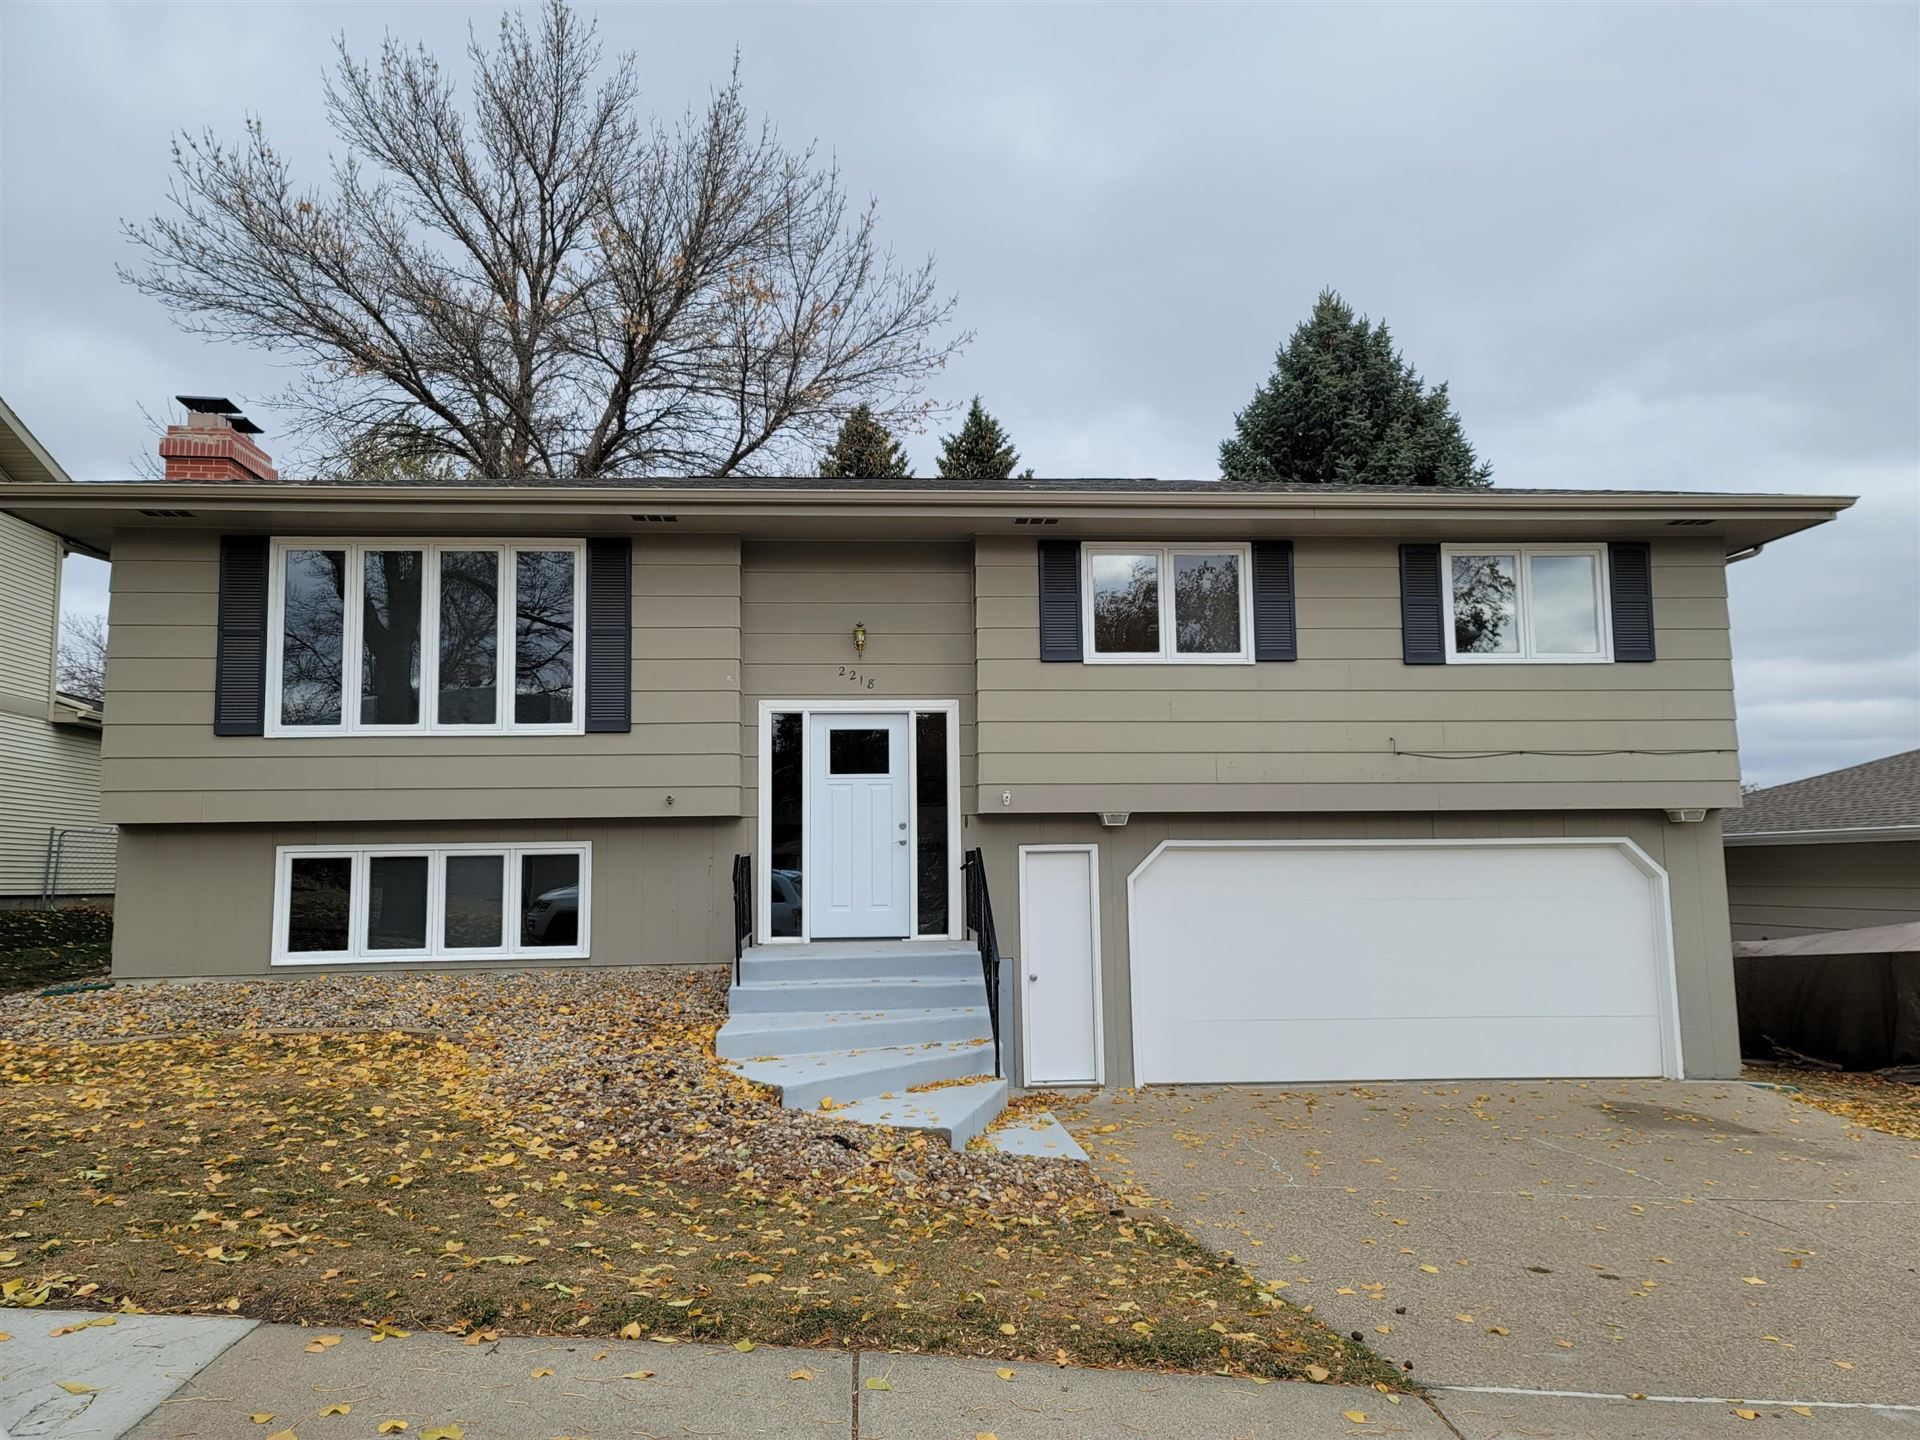 2218 Coolidge Avenue, Bismarck, ND 58501 - #: 408849